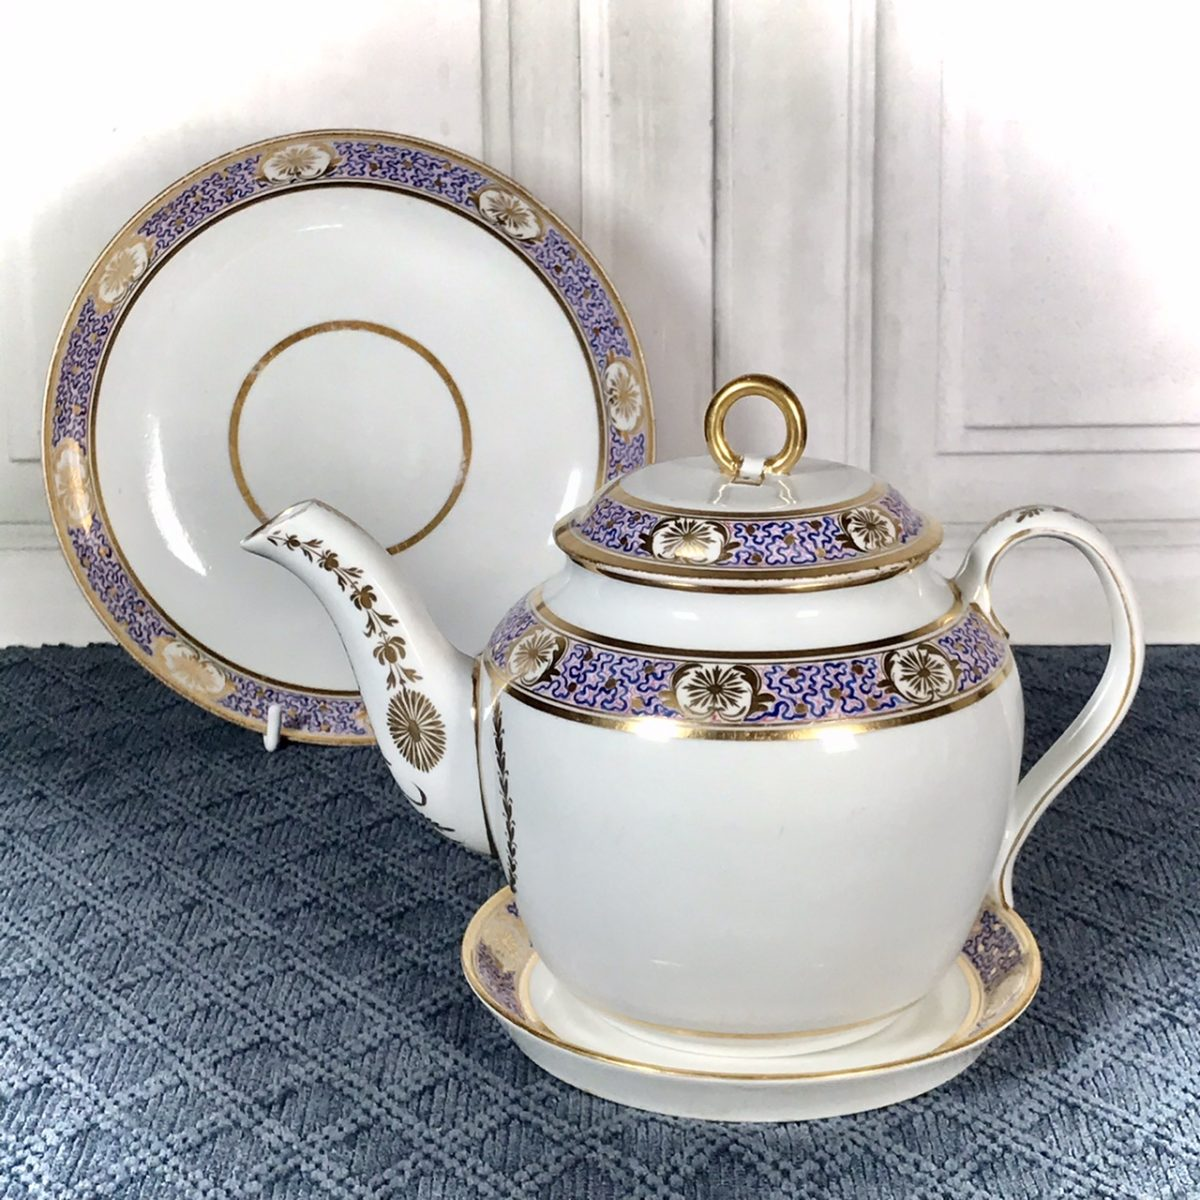 C18th Teapot & Stand + Saucer Dish, by Neale & Co